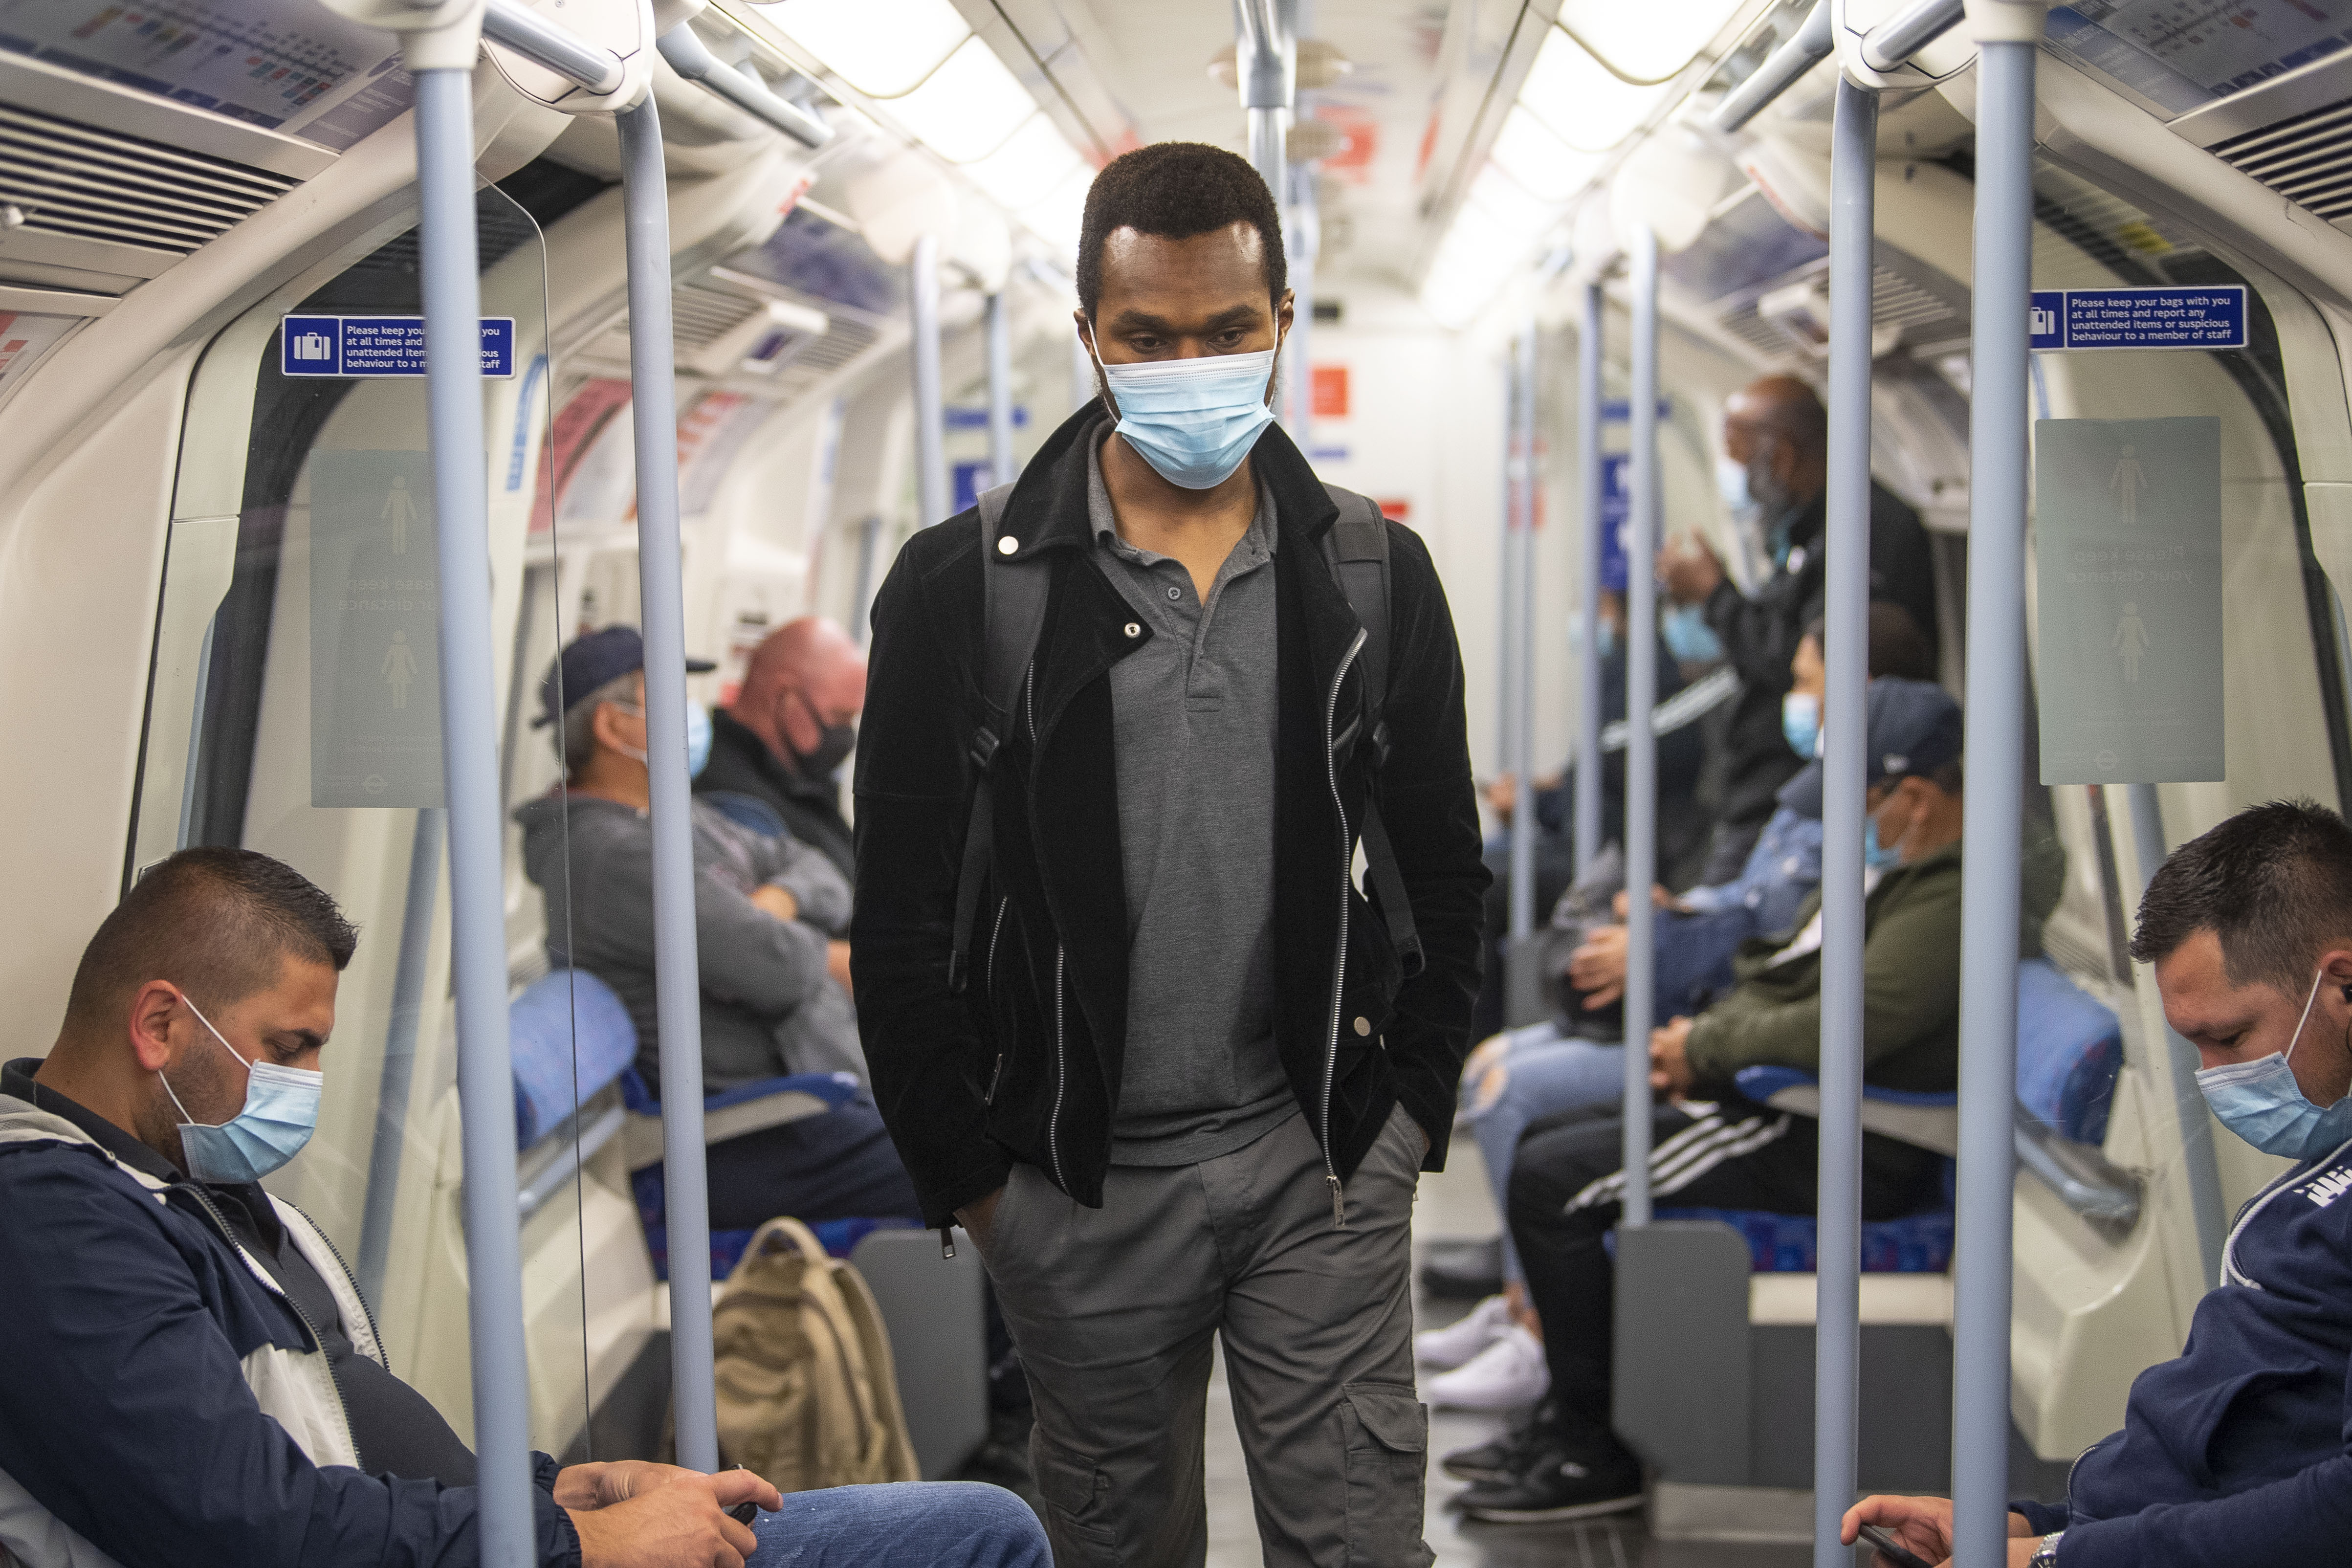 Passengers wearing face masks on the Jubilee Line in East London as face coverings become compulsory on public transport in England with the easing of further lockdown restrictions during the coronavirus pandemic. (Photo by Victoria Jones/PA Images via Getty Images)